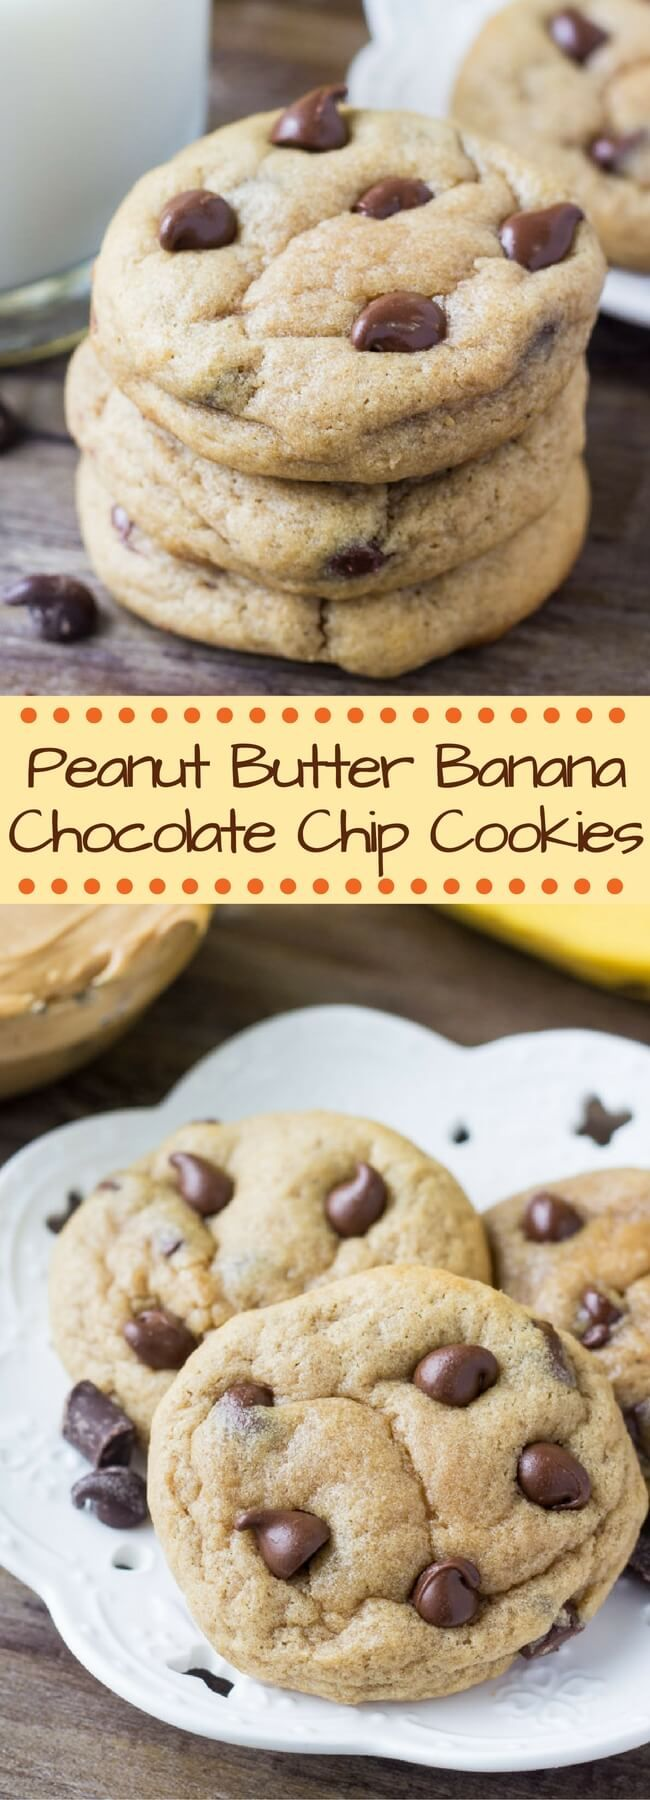 These Peanut Butter Banana Chocolate Chip Cookies are soft, chewy, a little gooey & packed with flavor. Seriously, the best way to use up ripe bananas!